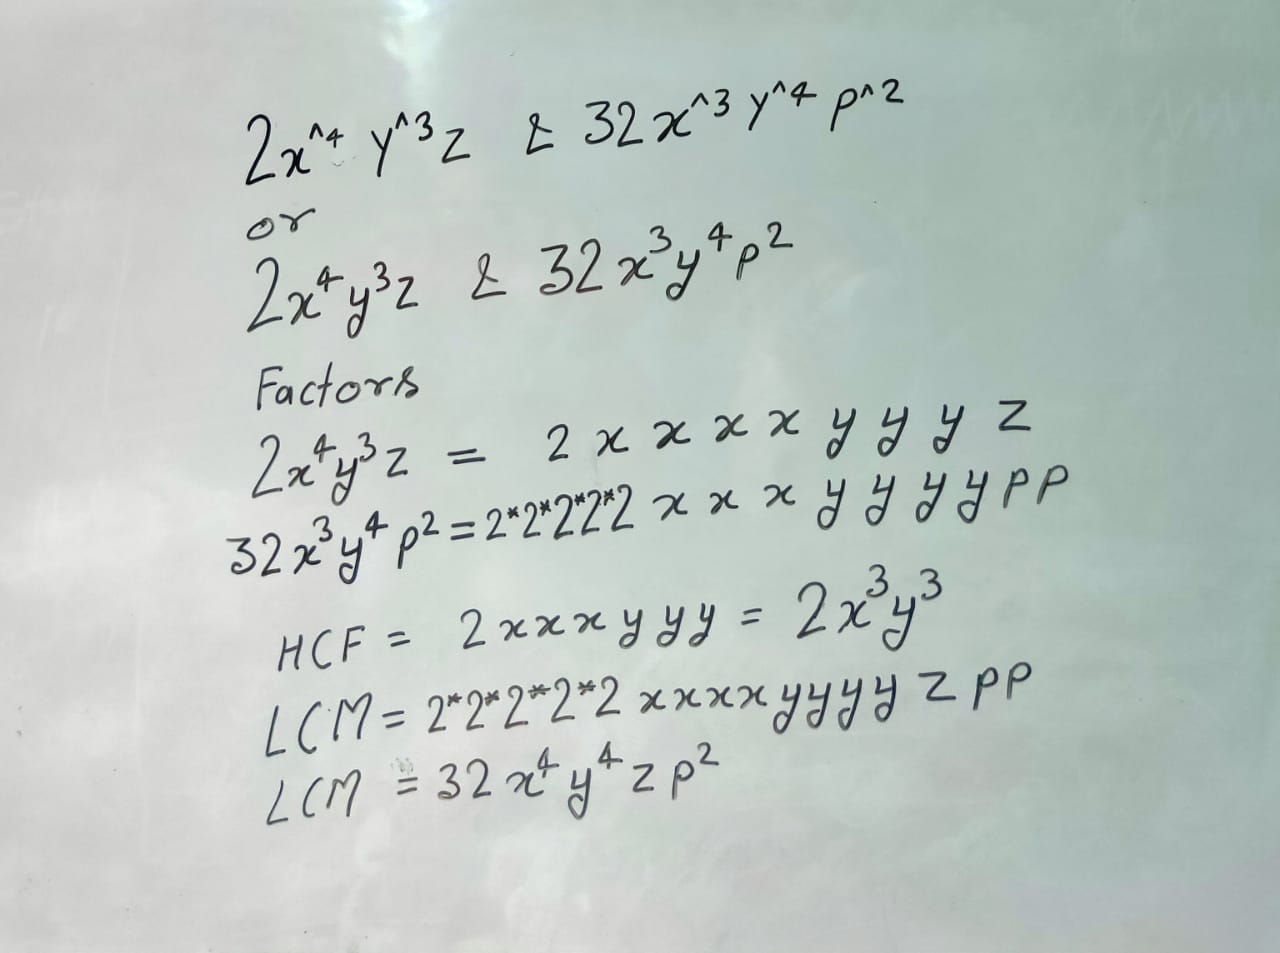 Find the HCF and LCM of 2x^4y^3z and 32x^3y^4p^2